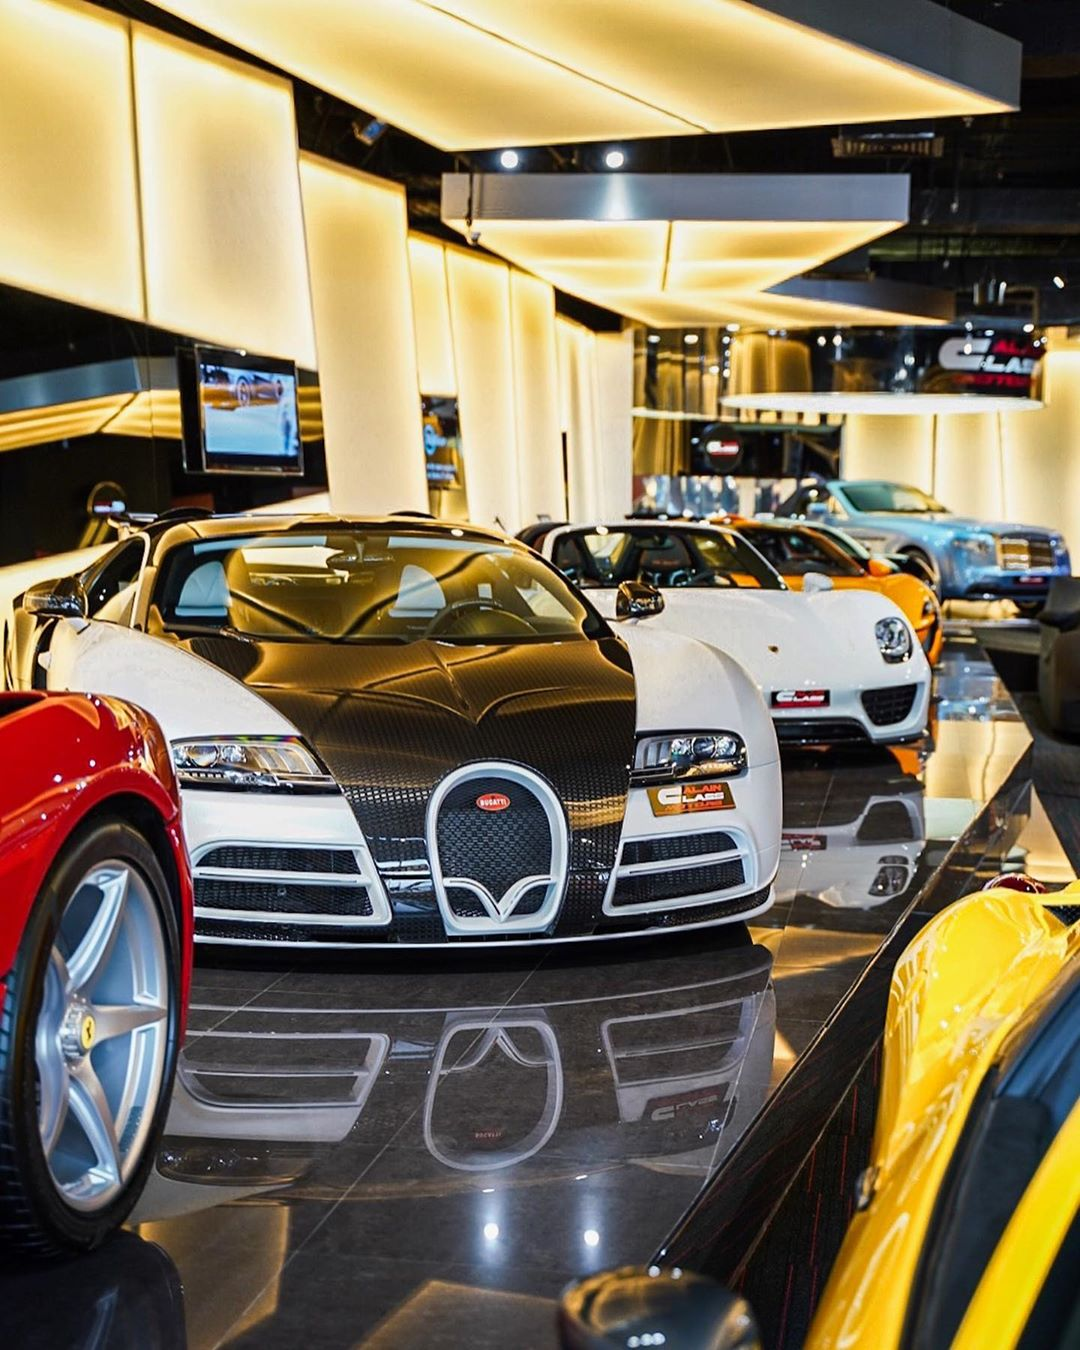 Hypercar Heaven ? Live from Dubai in Story ?? #cars247